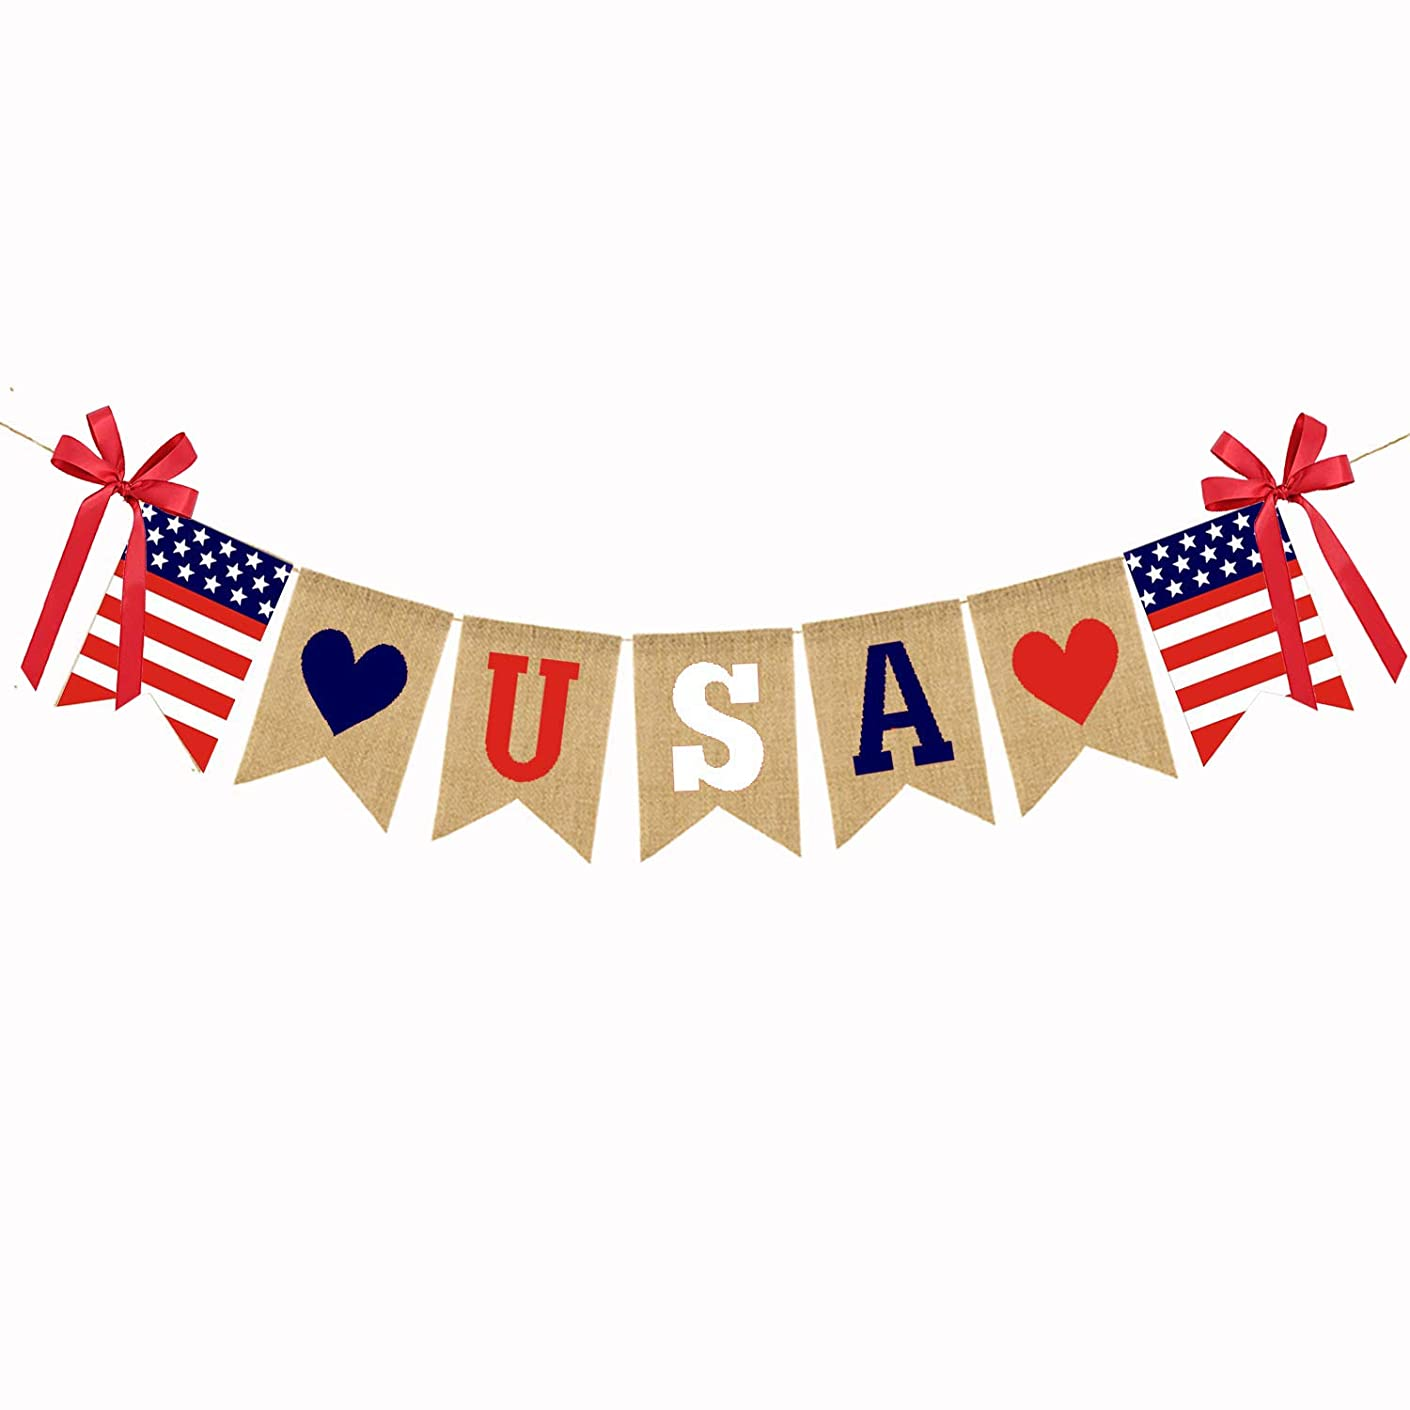 USA Banner American Independence Day 4th of July Banner Patriotic Bunting Banner American Flag Banner Red White and Blue Theme Party Supplies